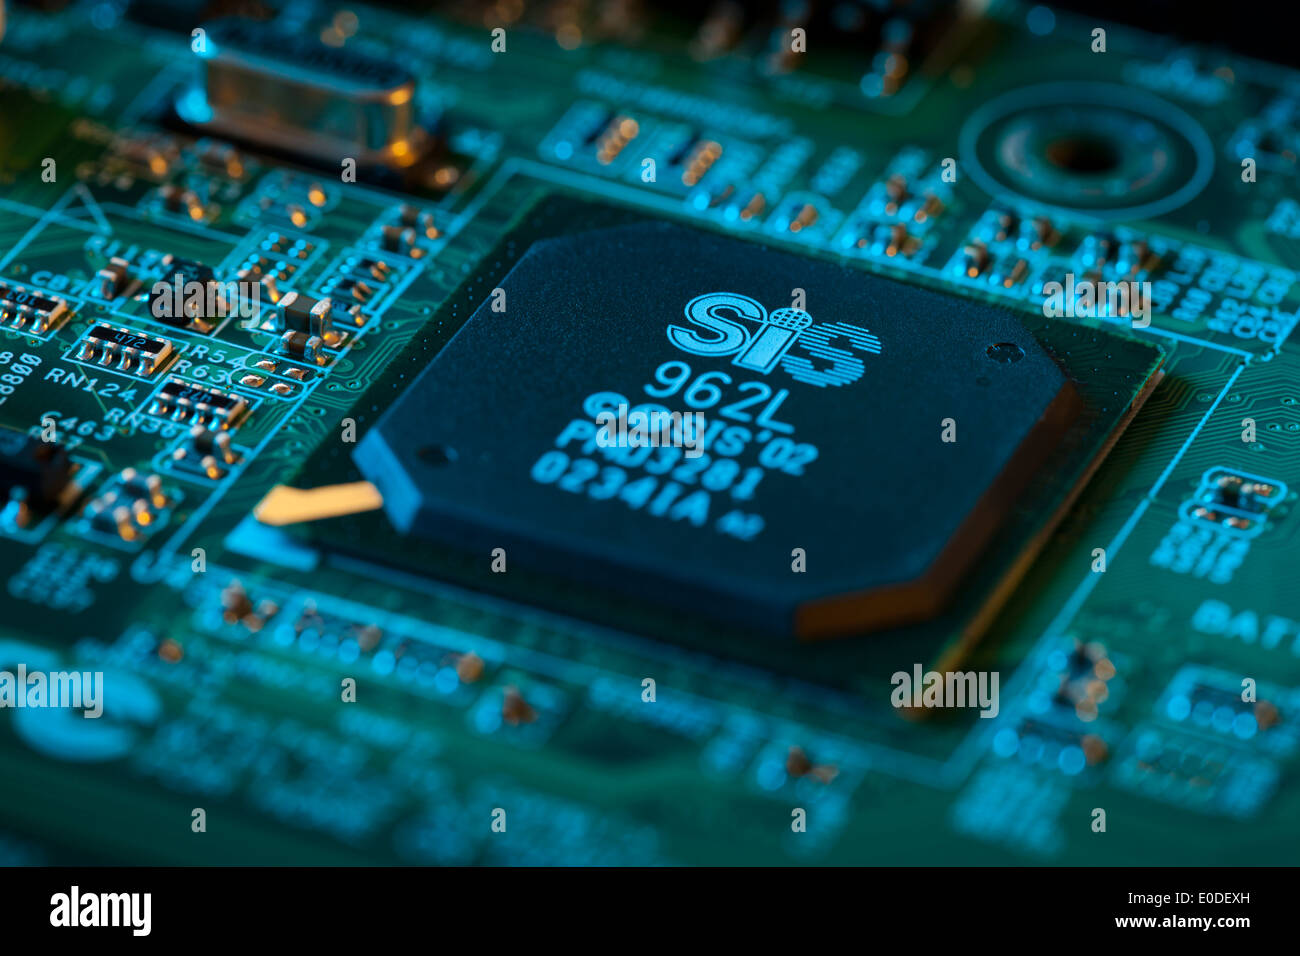 Silicon Chip Maker Stock Photos Images Circuit Board Of Sis 962l Southbridge Chipset On Image